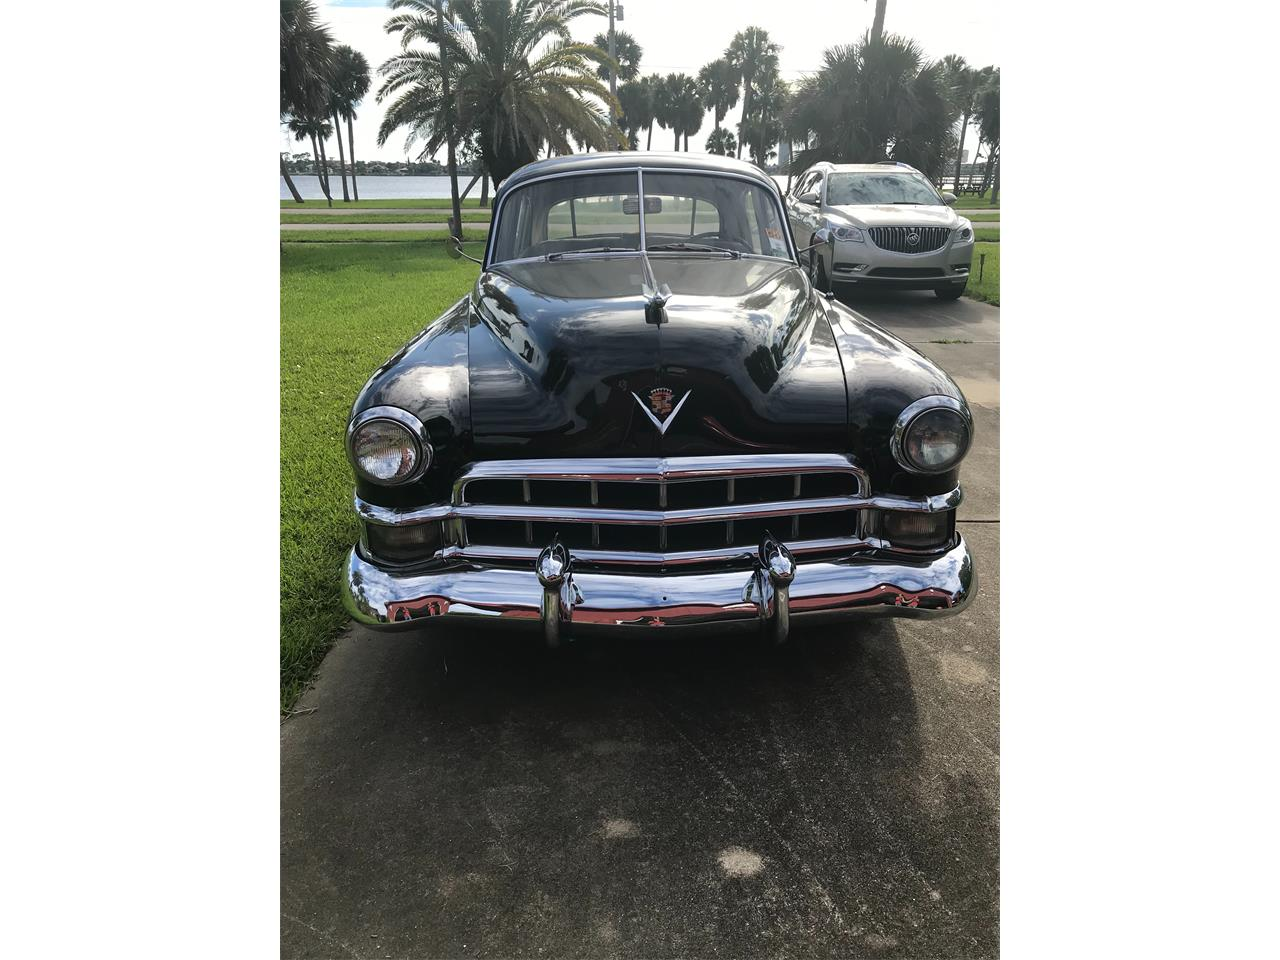 Large Picture of '49 4-Dr Sedan - $17,500.00 Offered by a Private Seller - QAJD